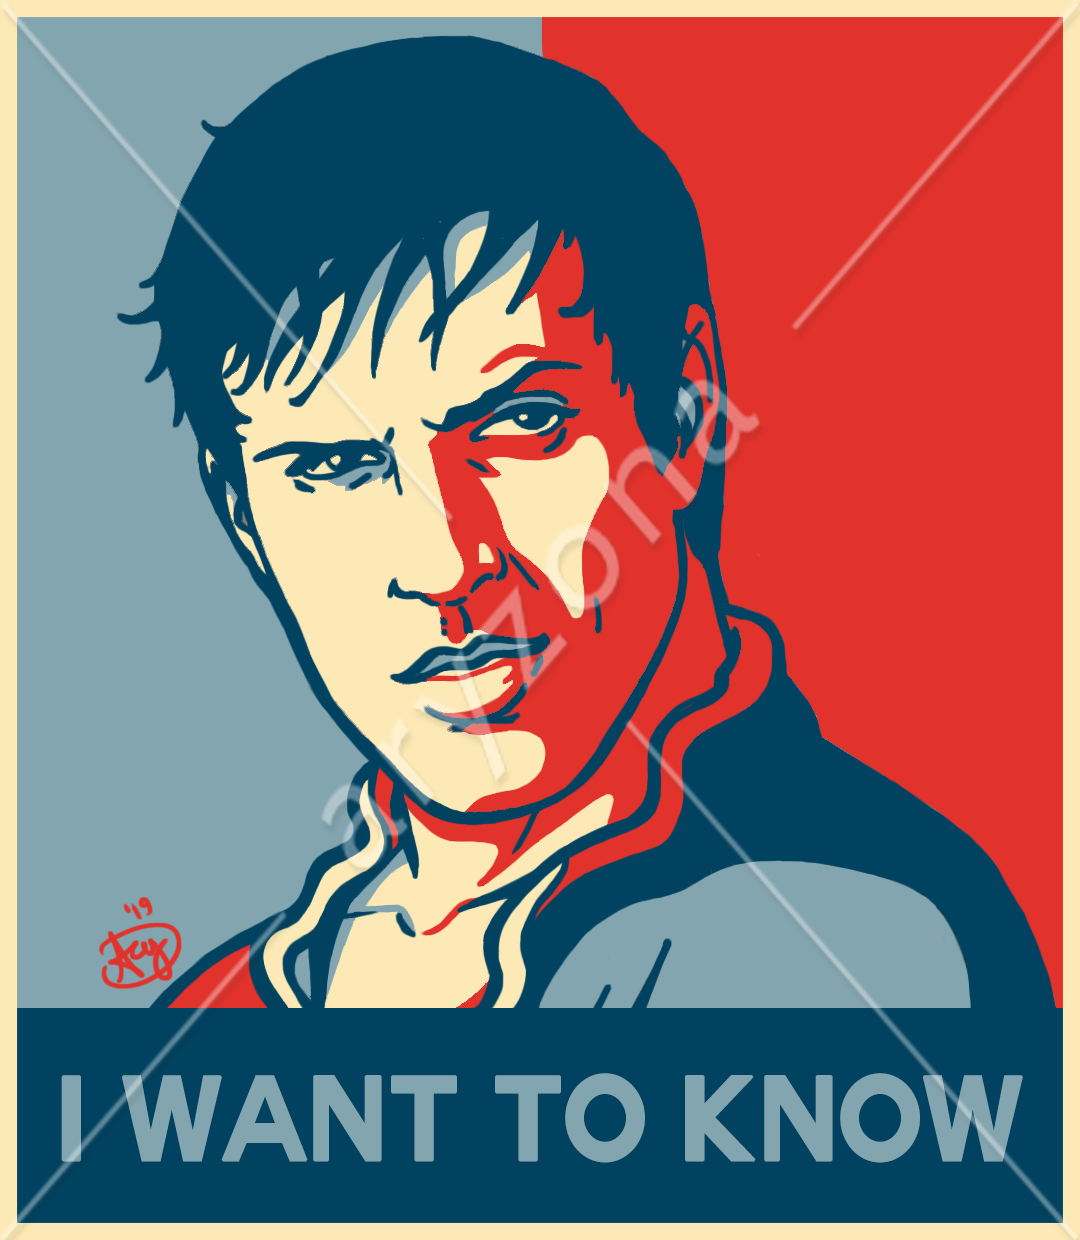 """""""I WANT TO KNOW"""" - Adrian HOPE Poster"""